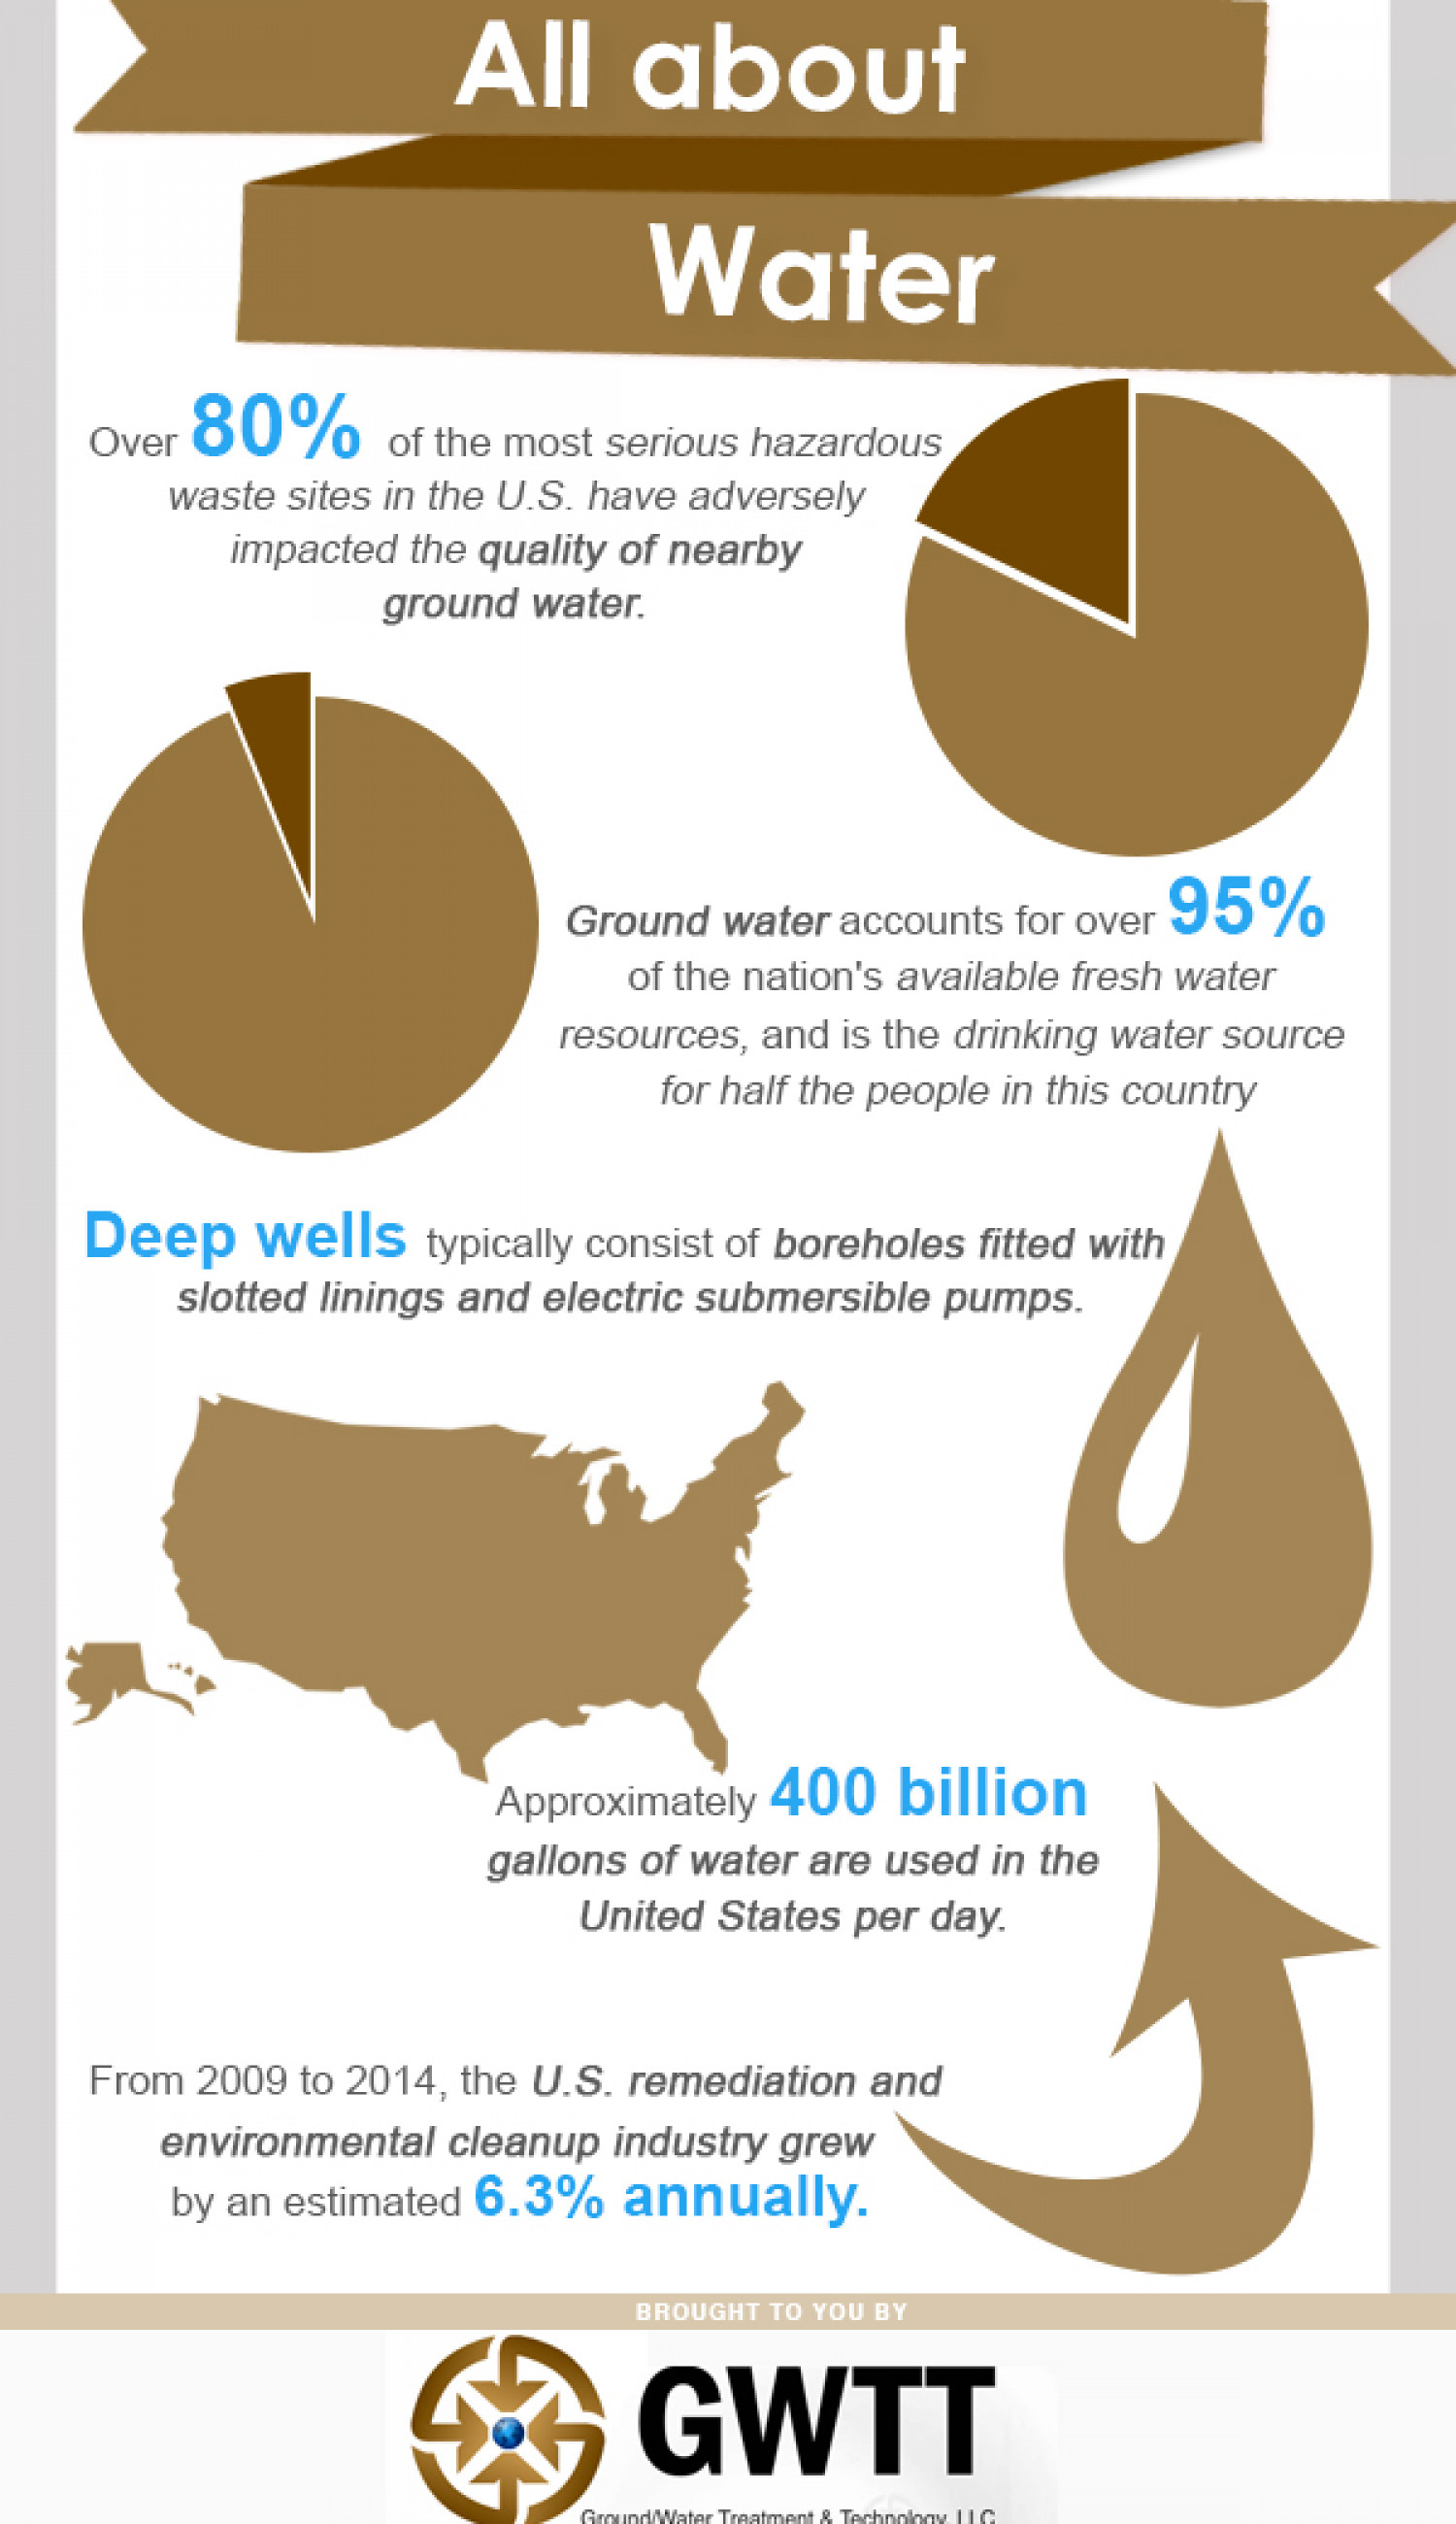 All About Water Infographic